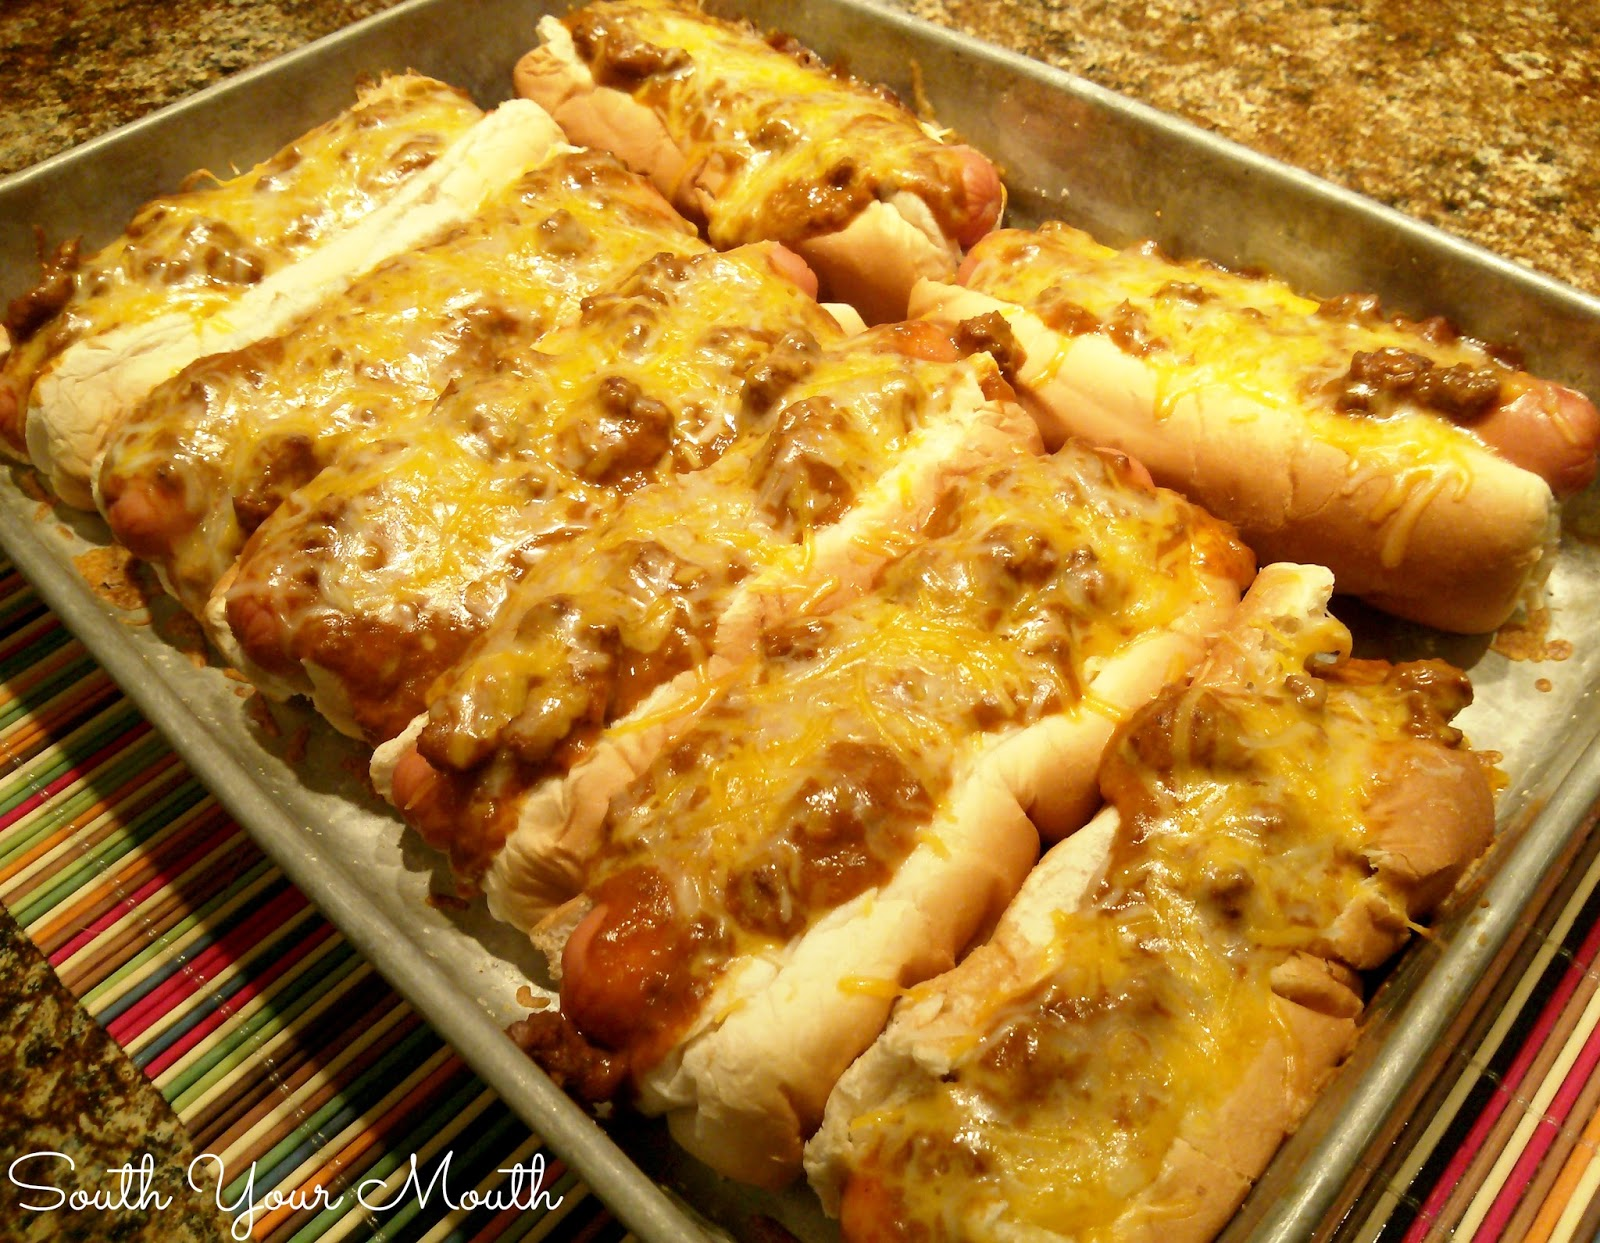 The Best Homemade Hot Dog Buns